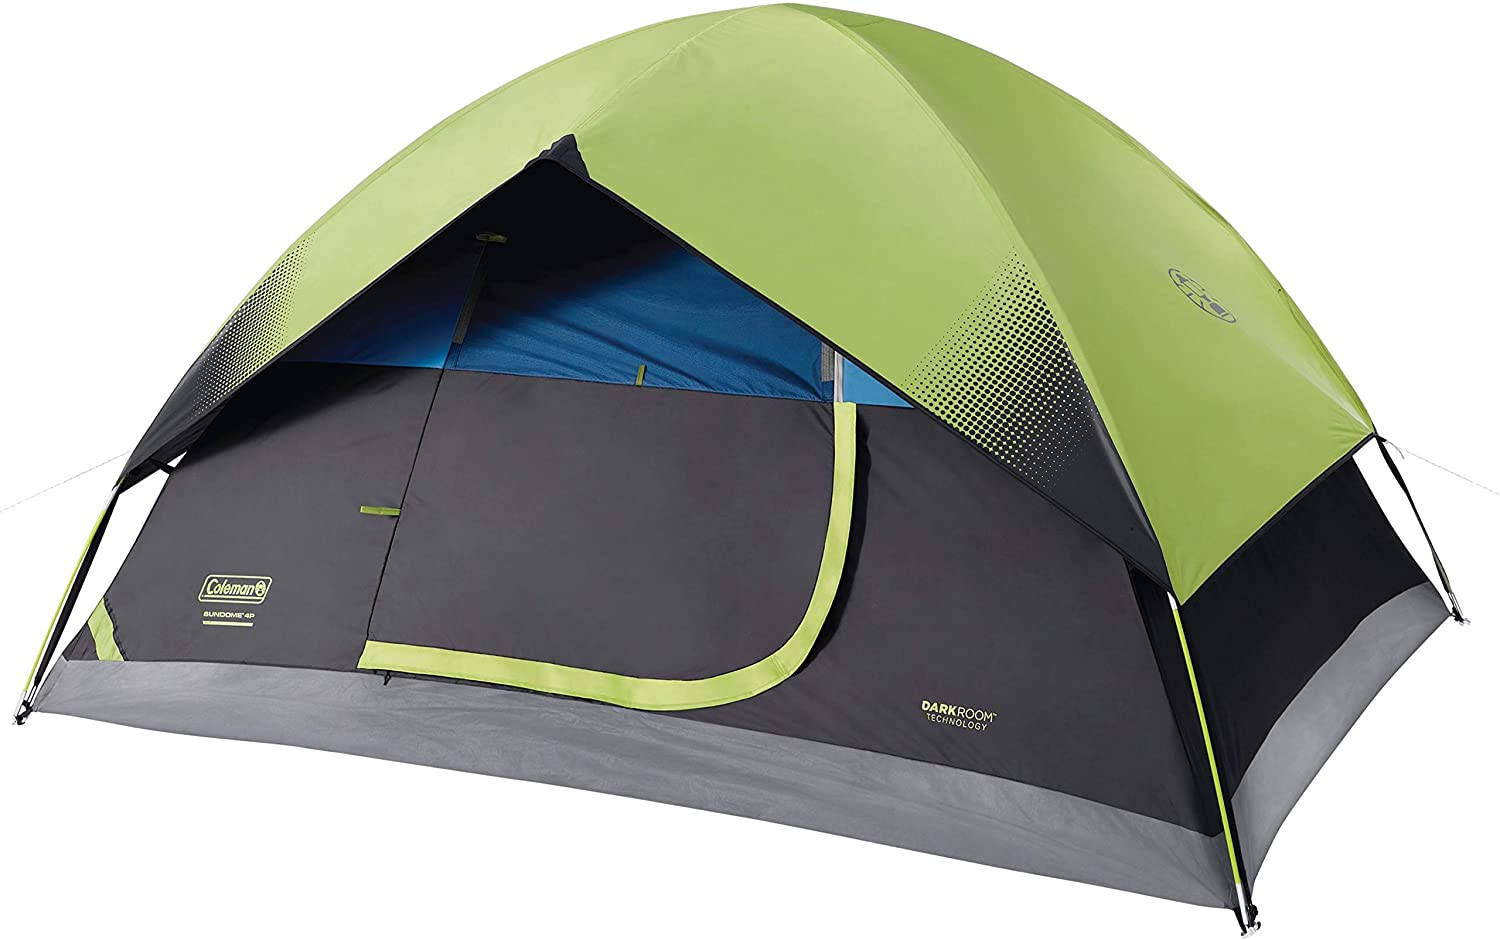 Coleman-Dome-Tent-For-Camping-min